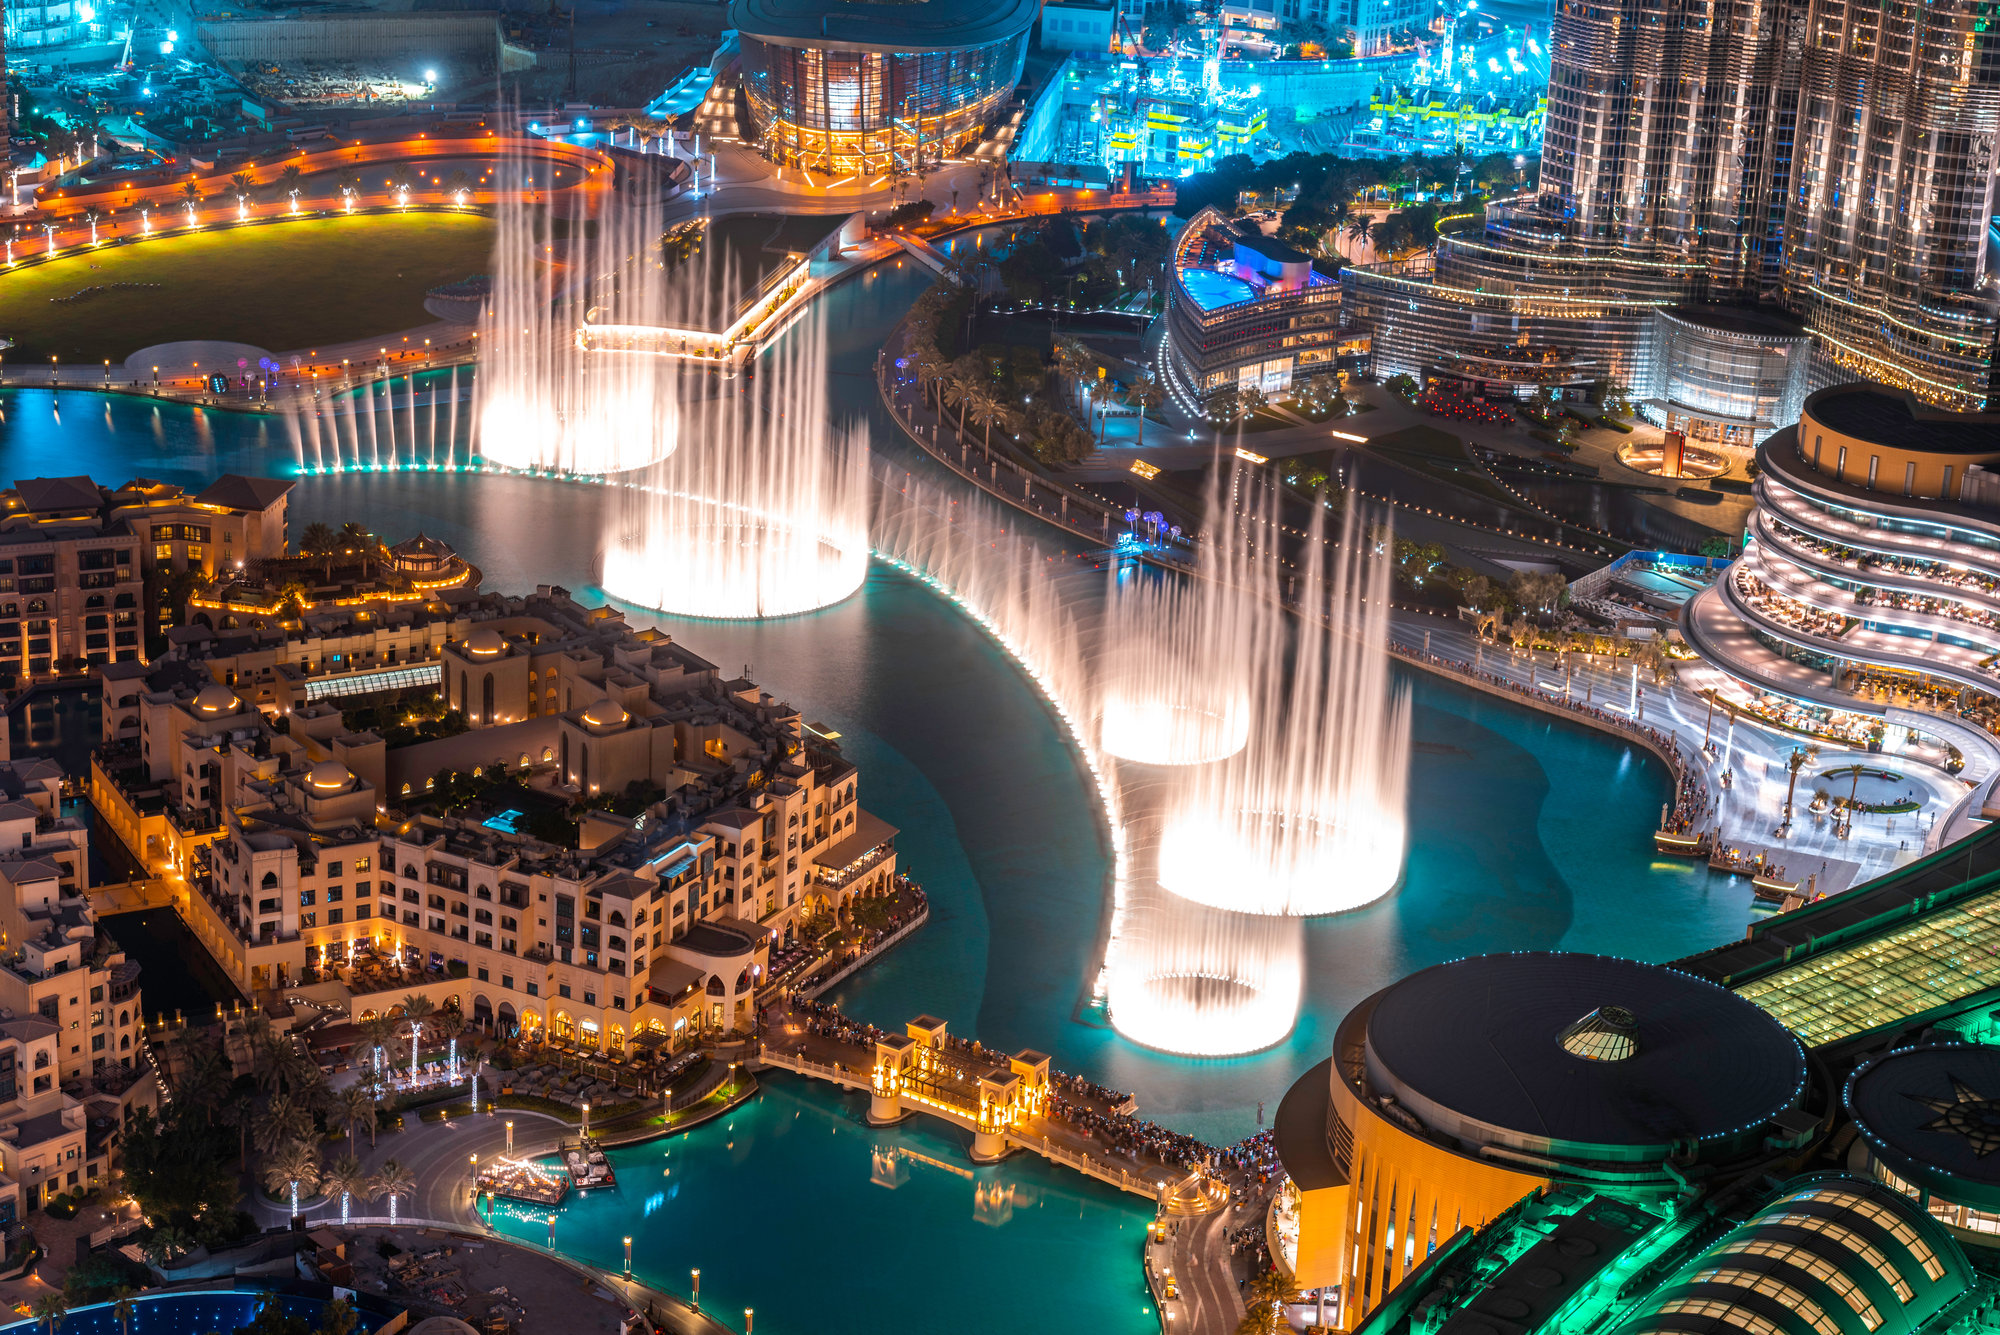 a fountain below Burj Khalifa